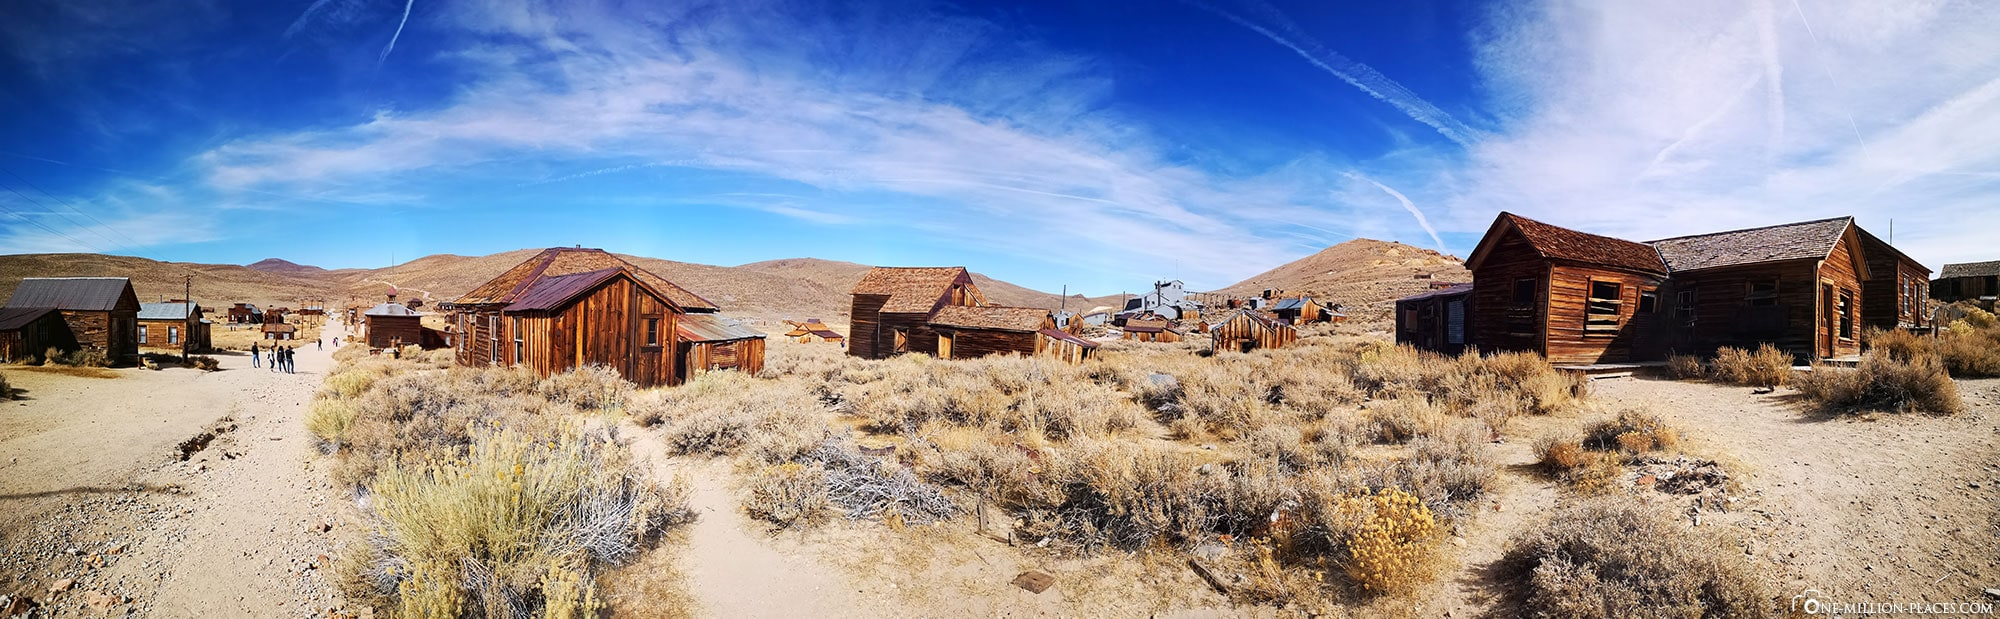 Panorama, Bodie, Ghost Town, Panorama, Ghost Town, California, USA